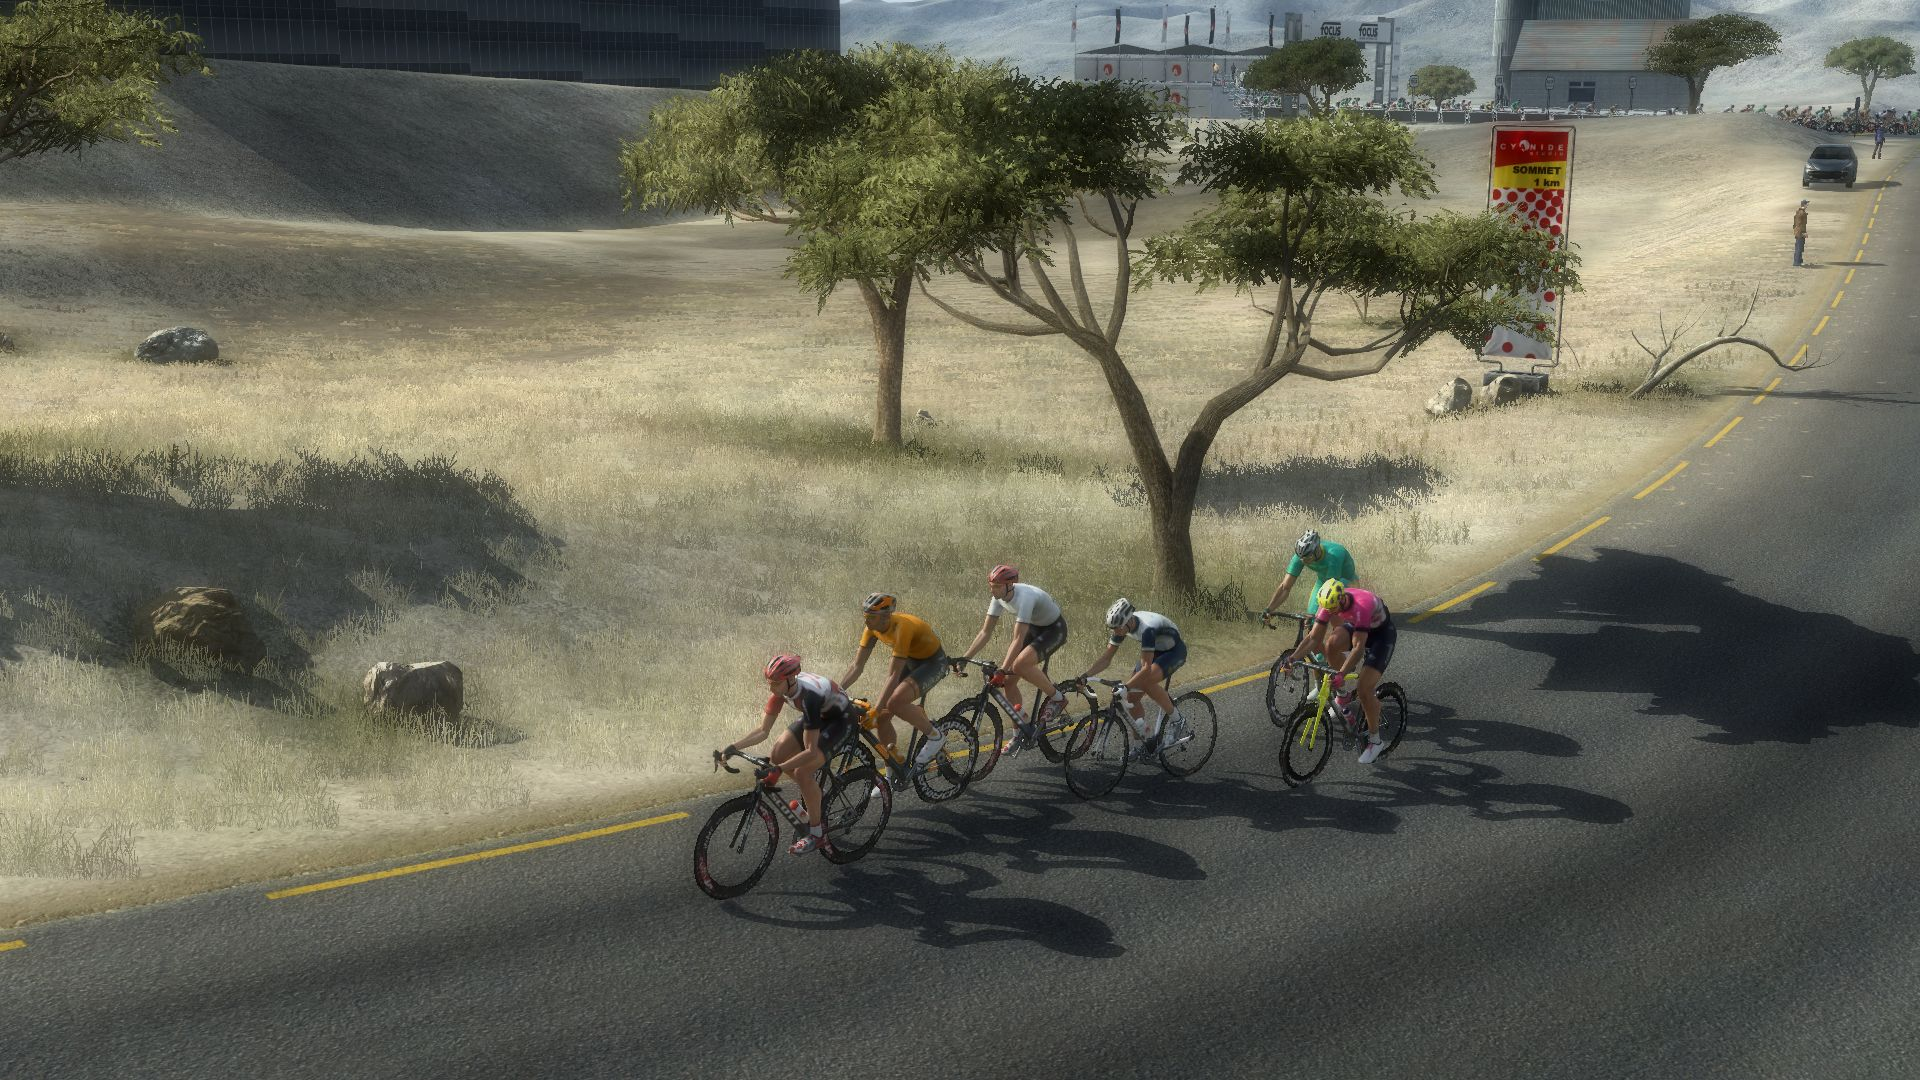 pcmdaily.com/images/mg/2019/Races/C2HC/Eritrea/TOES2%203.jpg